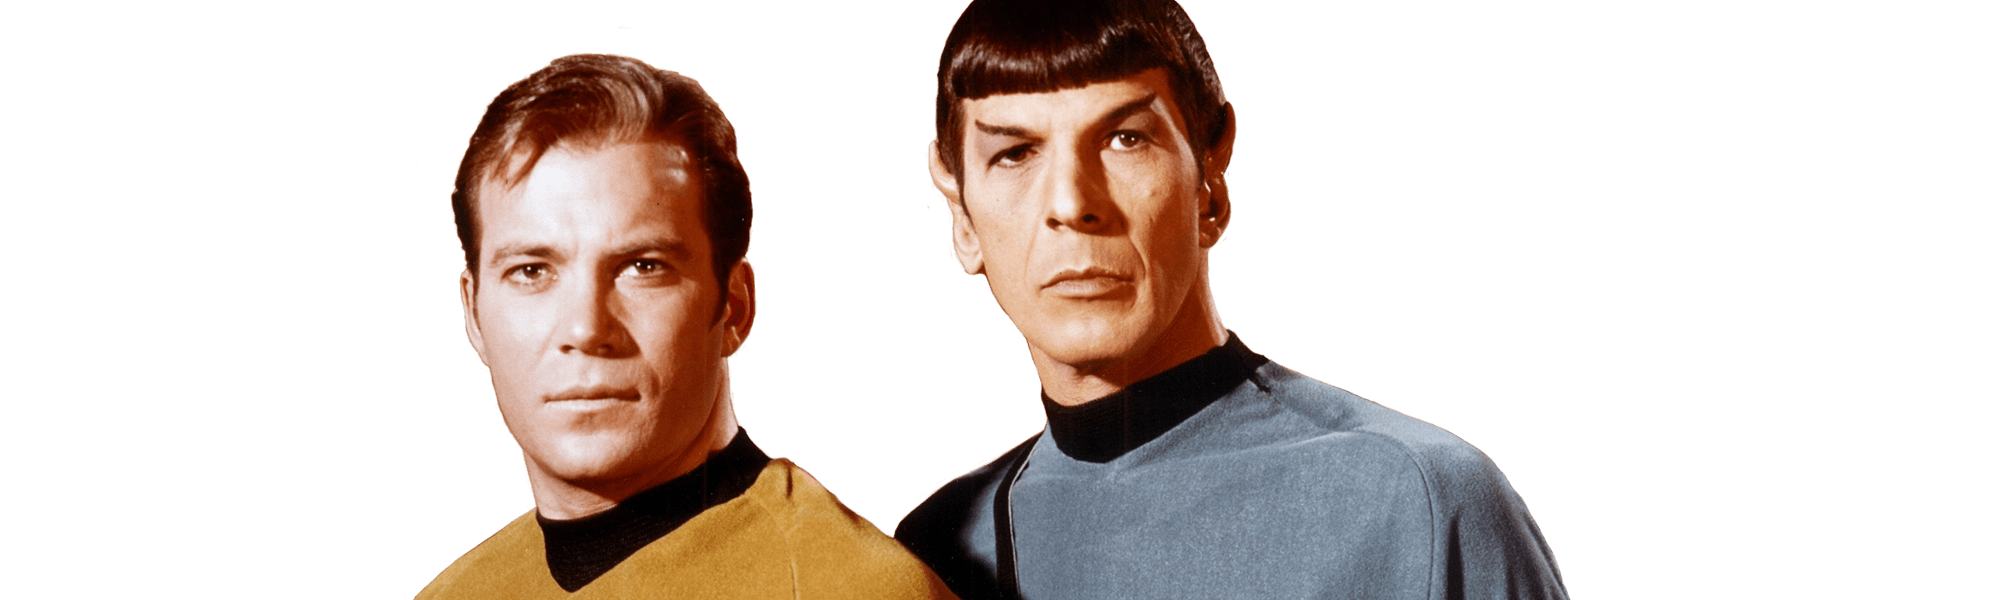 To boldly binge: my continuing mission to watch all 700 episodes of Star Trek